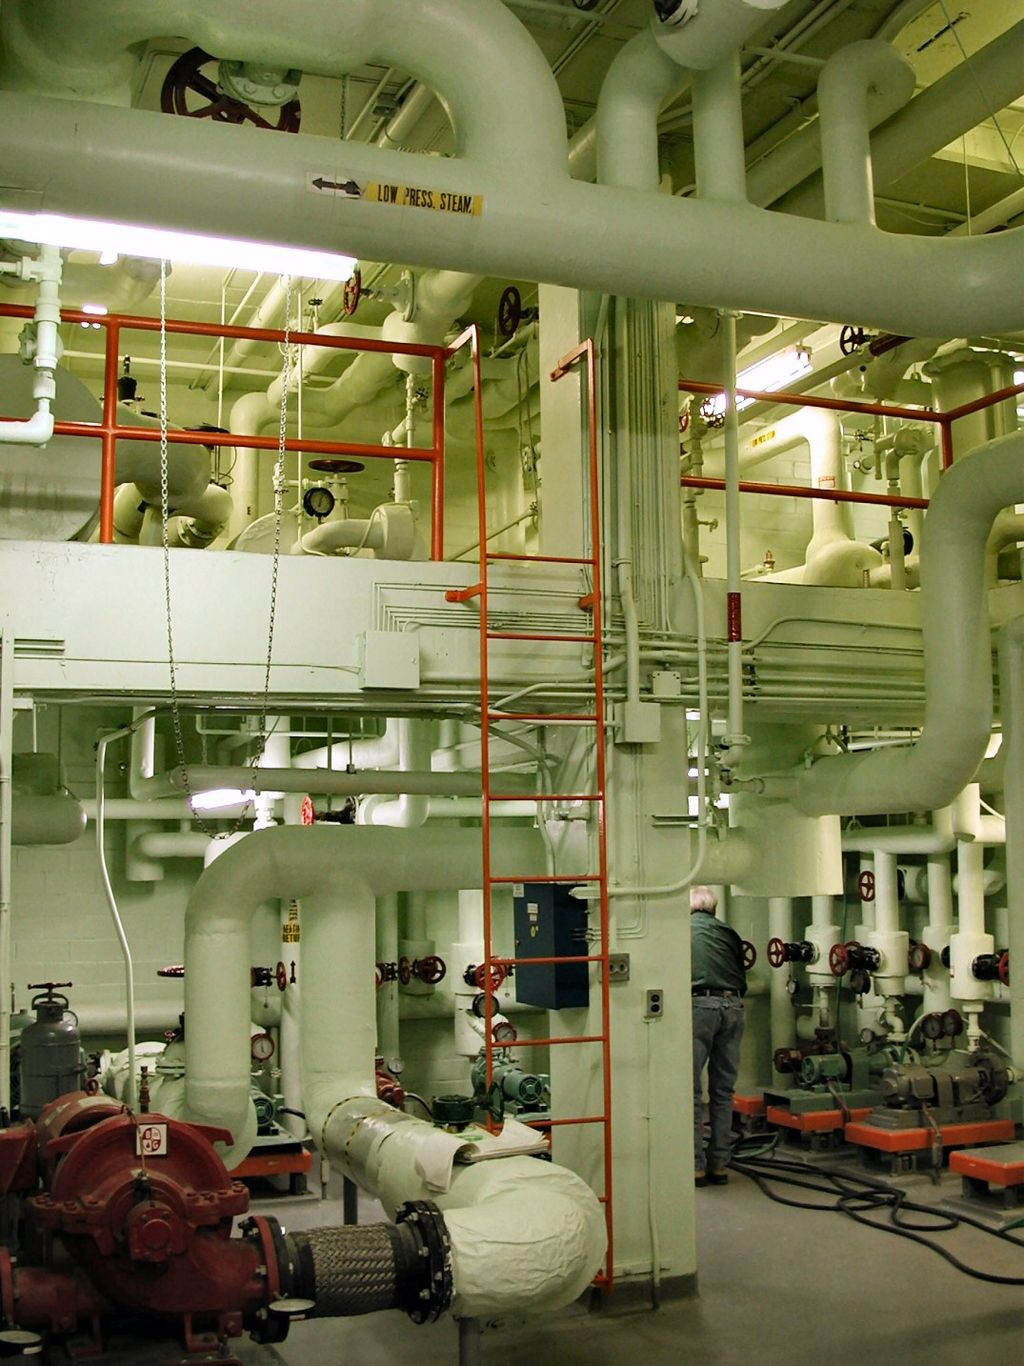 """""""Mechanical room"""" by Original uploader was P199 at en.wikipedia - Originally from en.wikipedia; description page is/was here.. Licensed under CC BY 2.5 via Wikimedia Commons."""